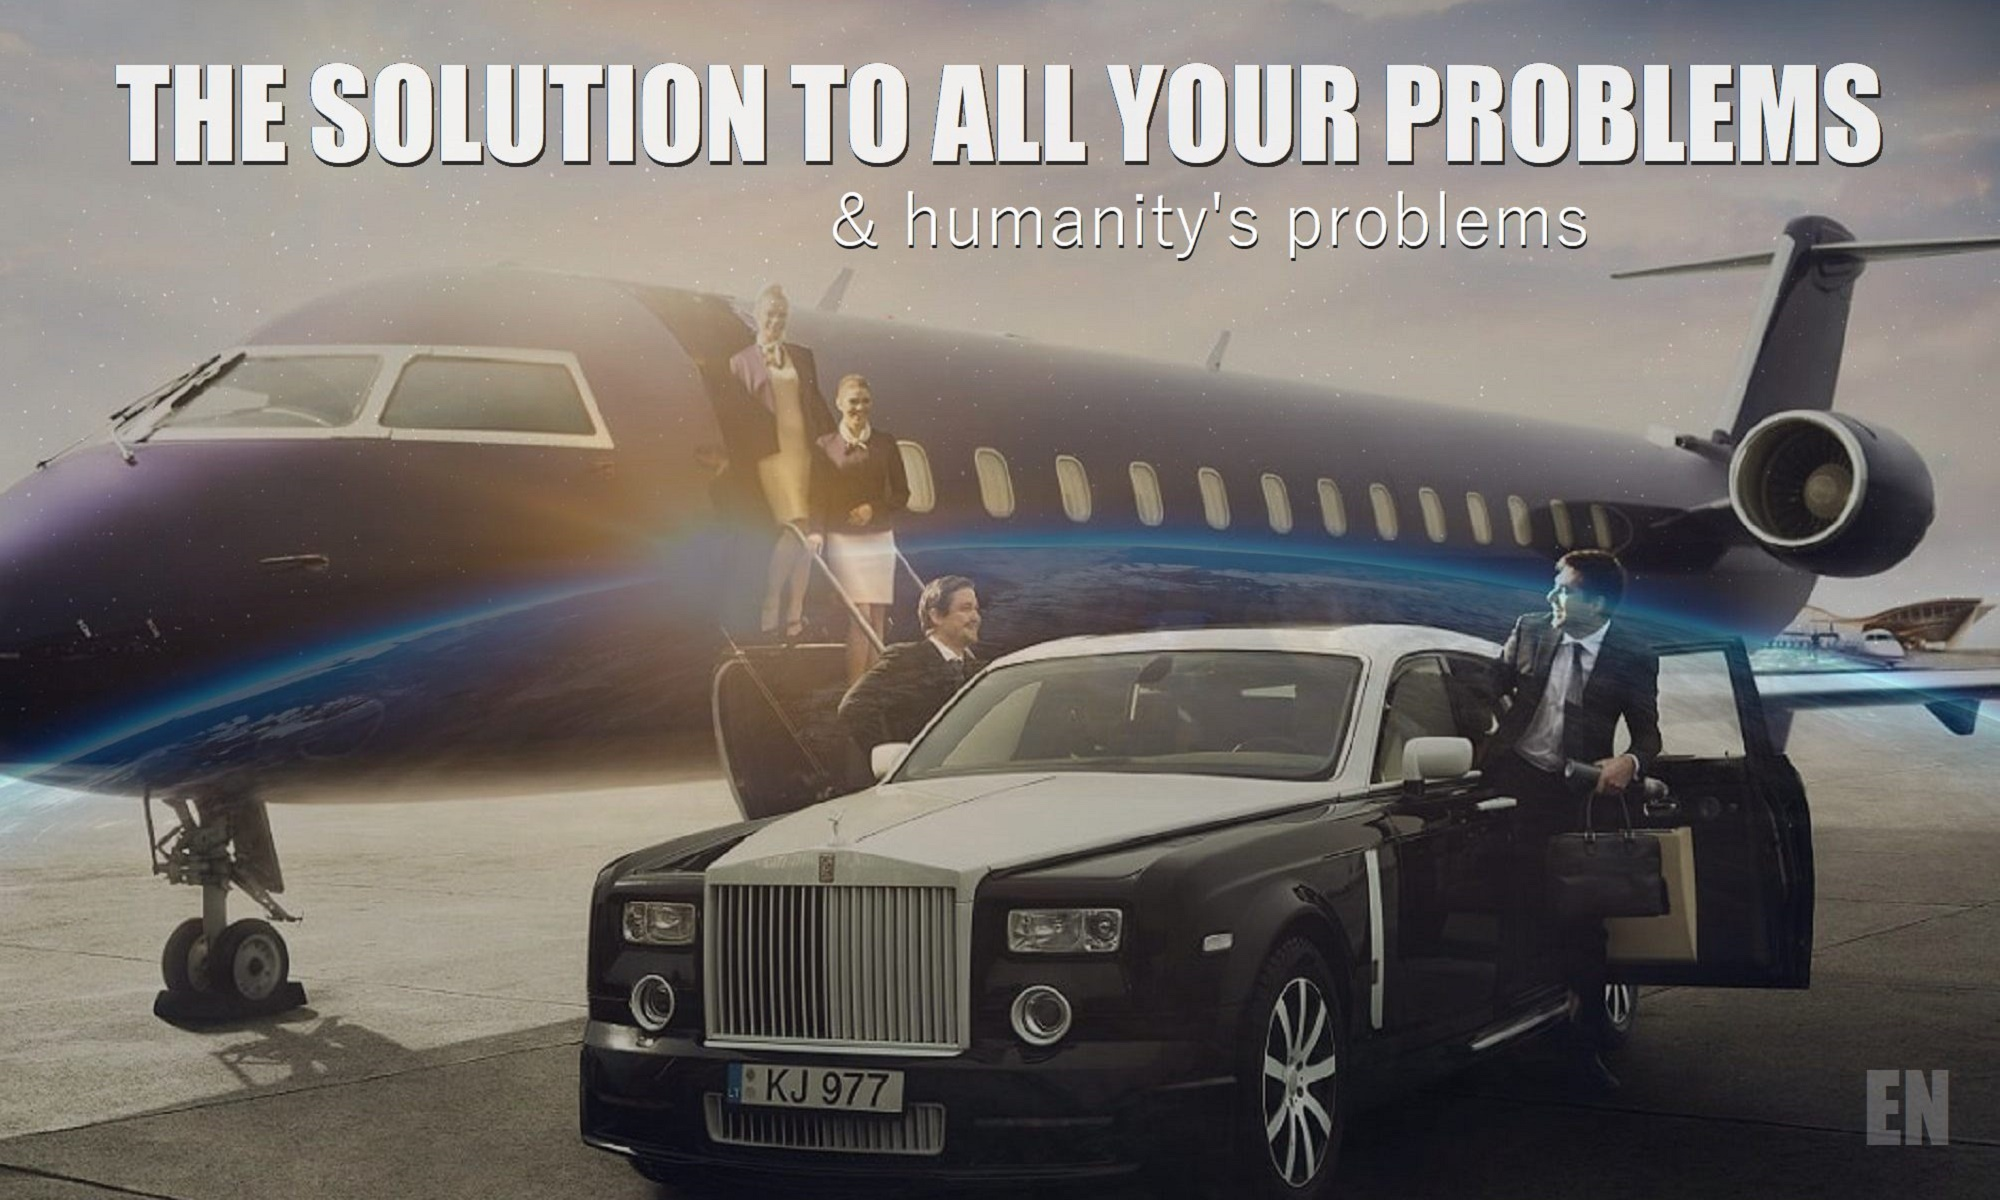 earth sunrise, jet and rolls depicts solution to all your problems